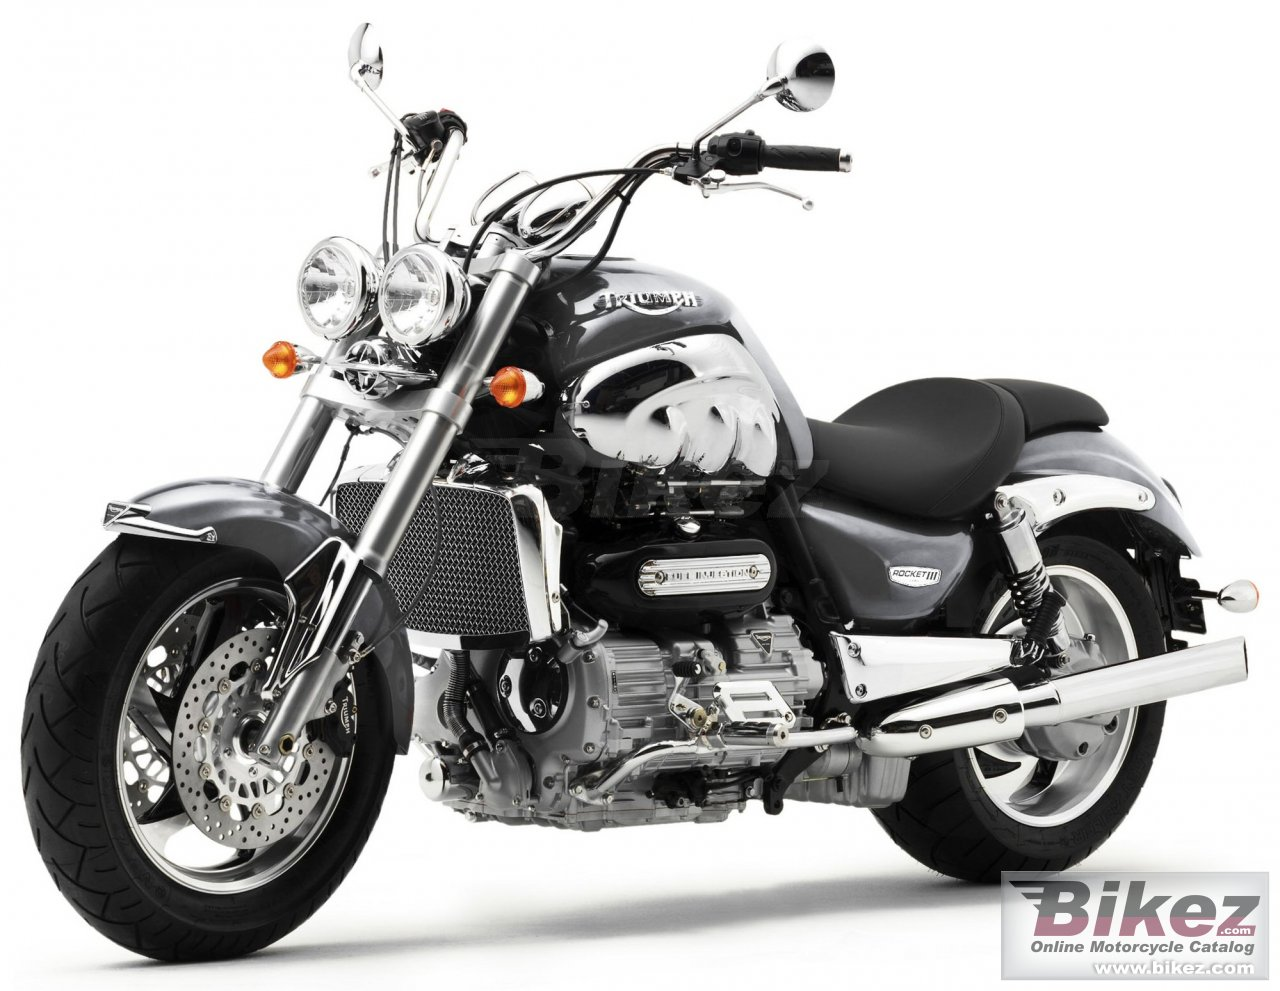 Big Triumph rocket iii picture and wallpaper from Bikez.com